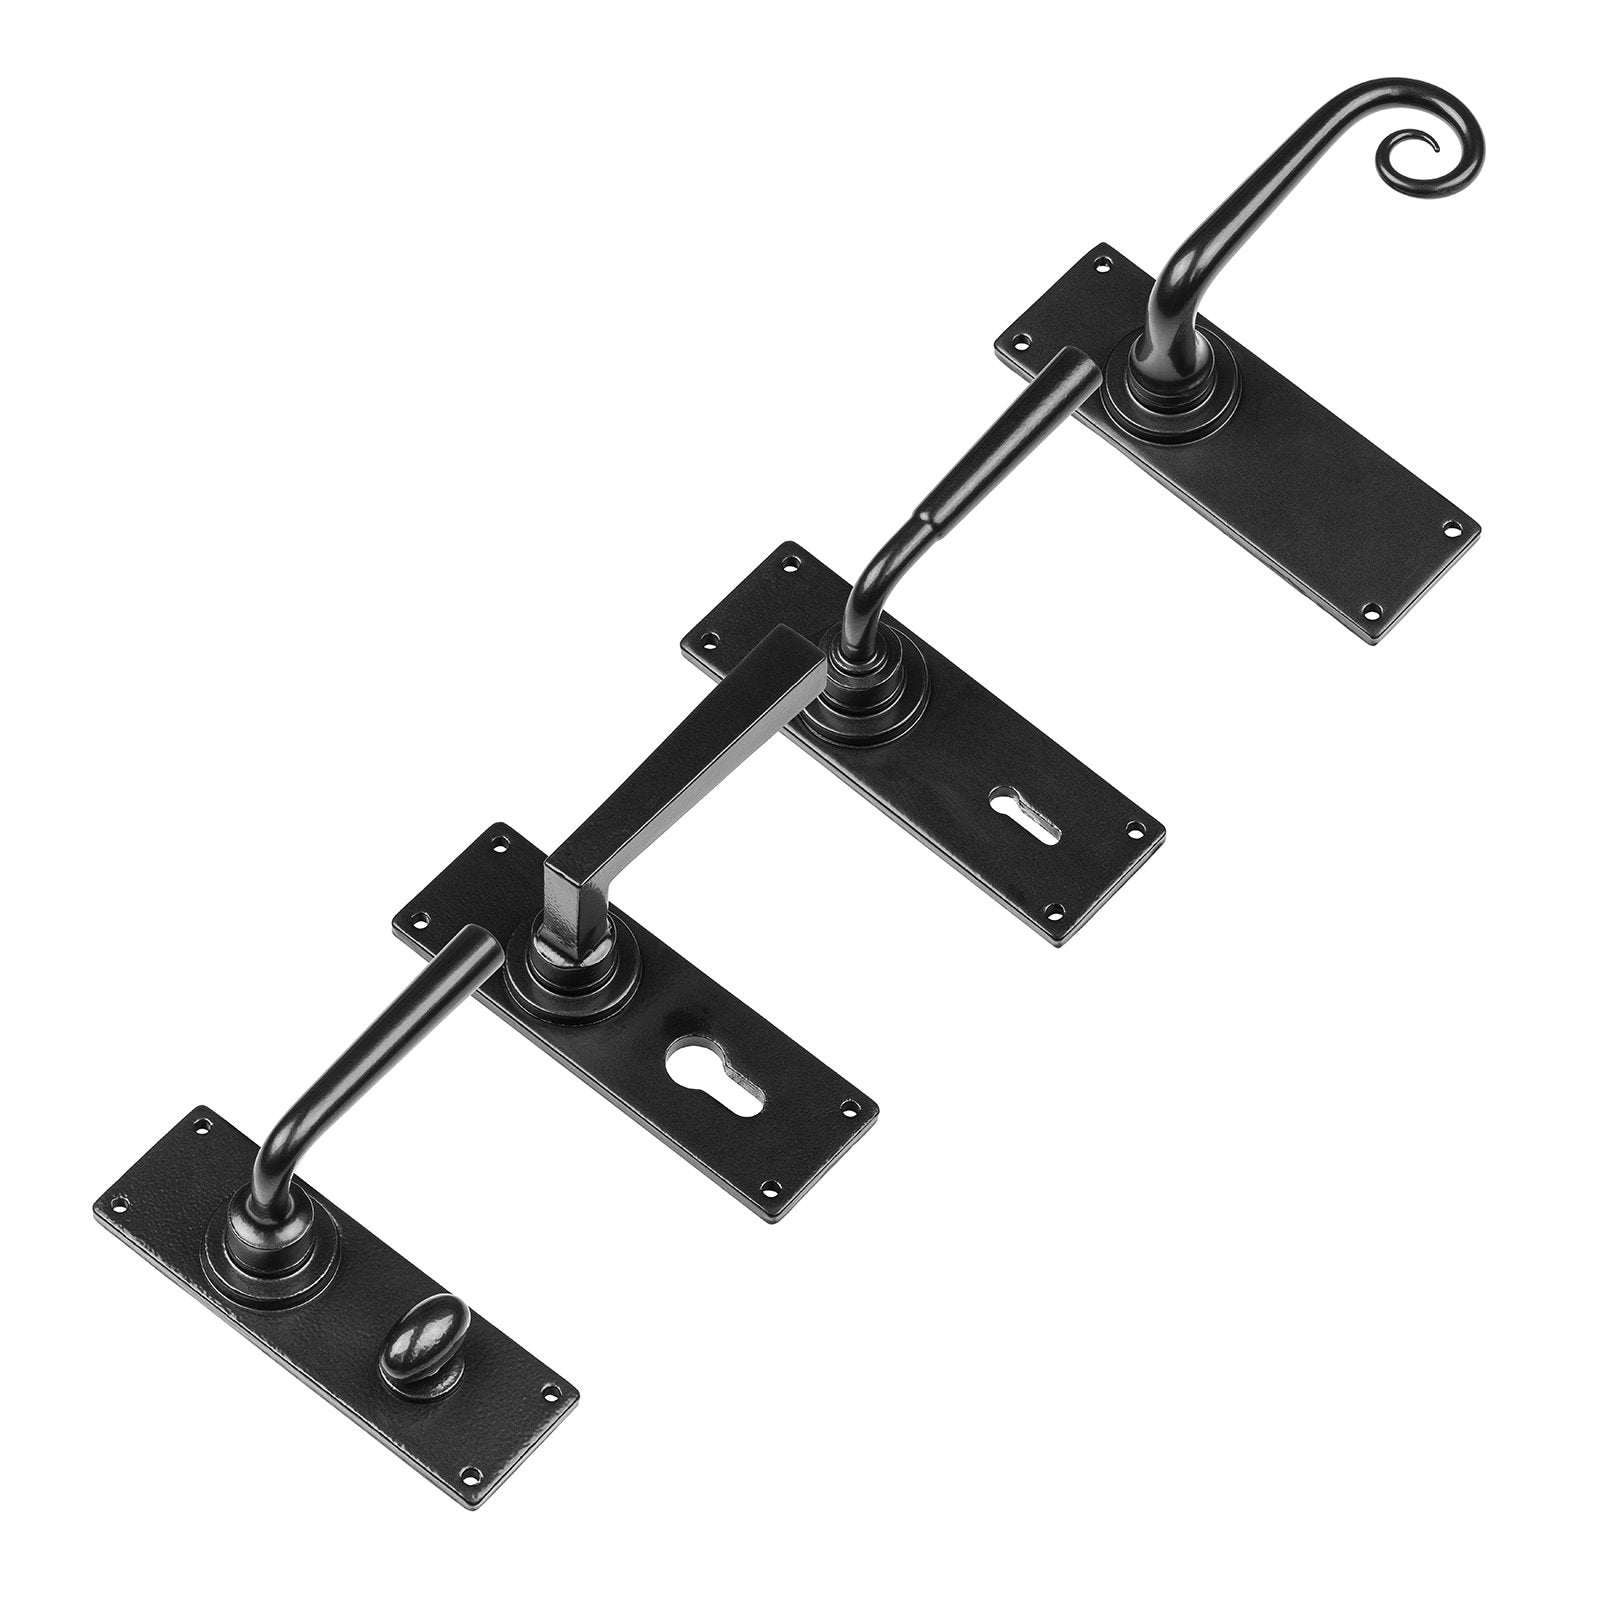 Stonebridge Ironmongery Lever Handles with Armor-Coat